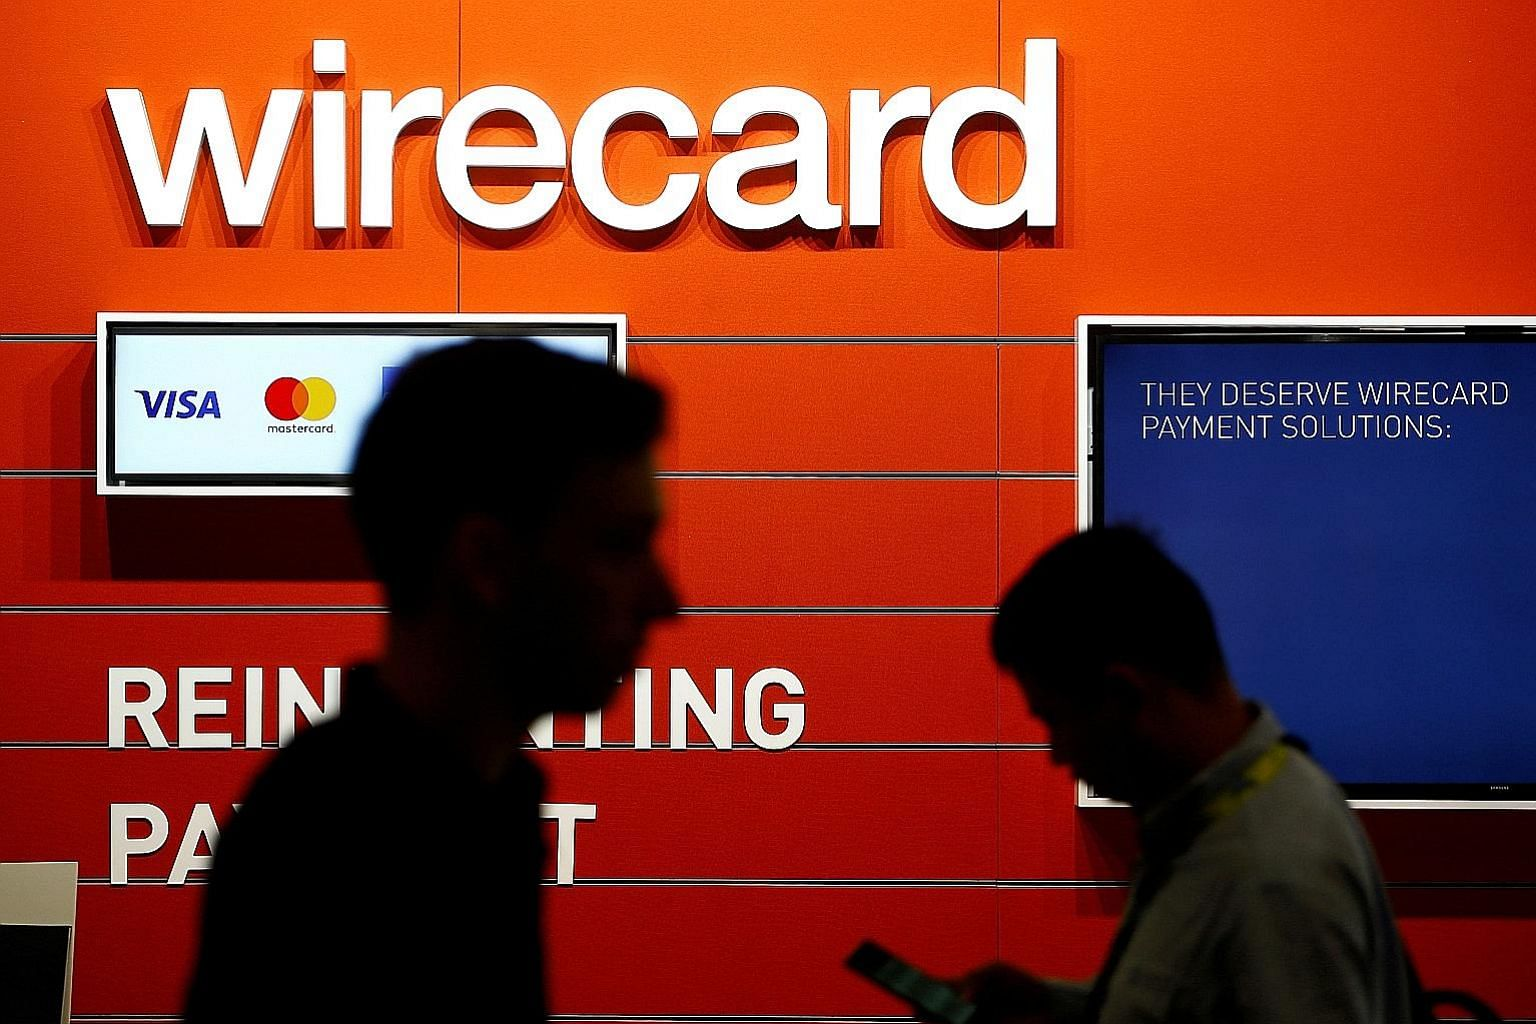 Wirecard services can be found in more than 250,000 firms around the world, including Singapore, which is its base for expanding into the rest of Asia.